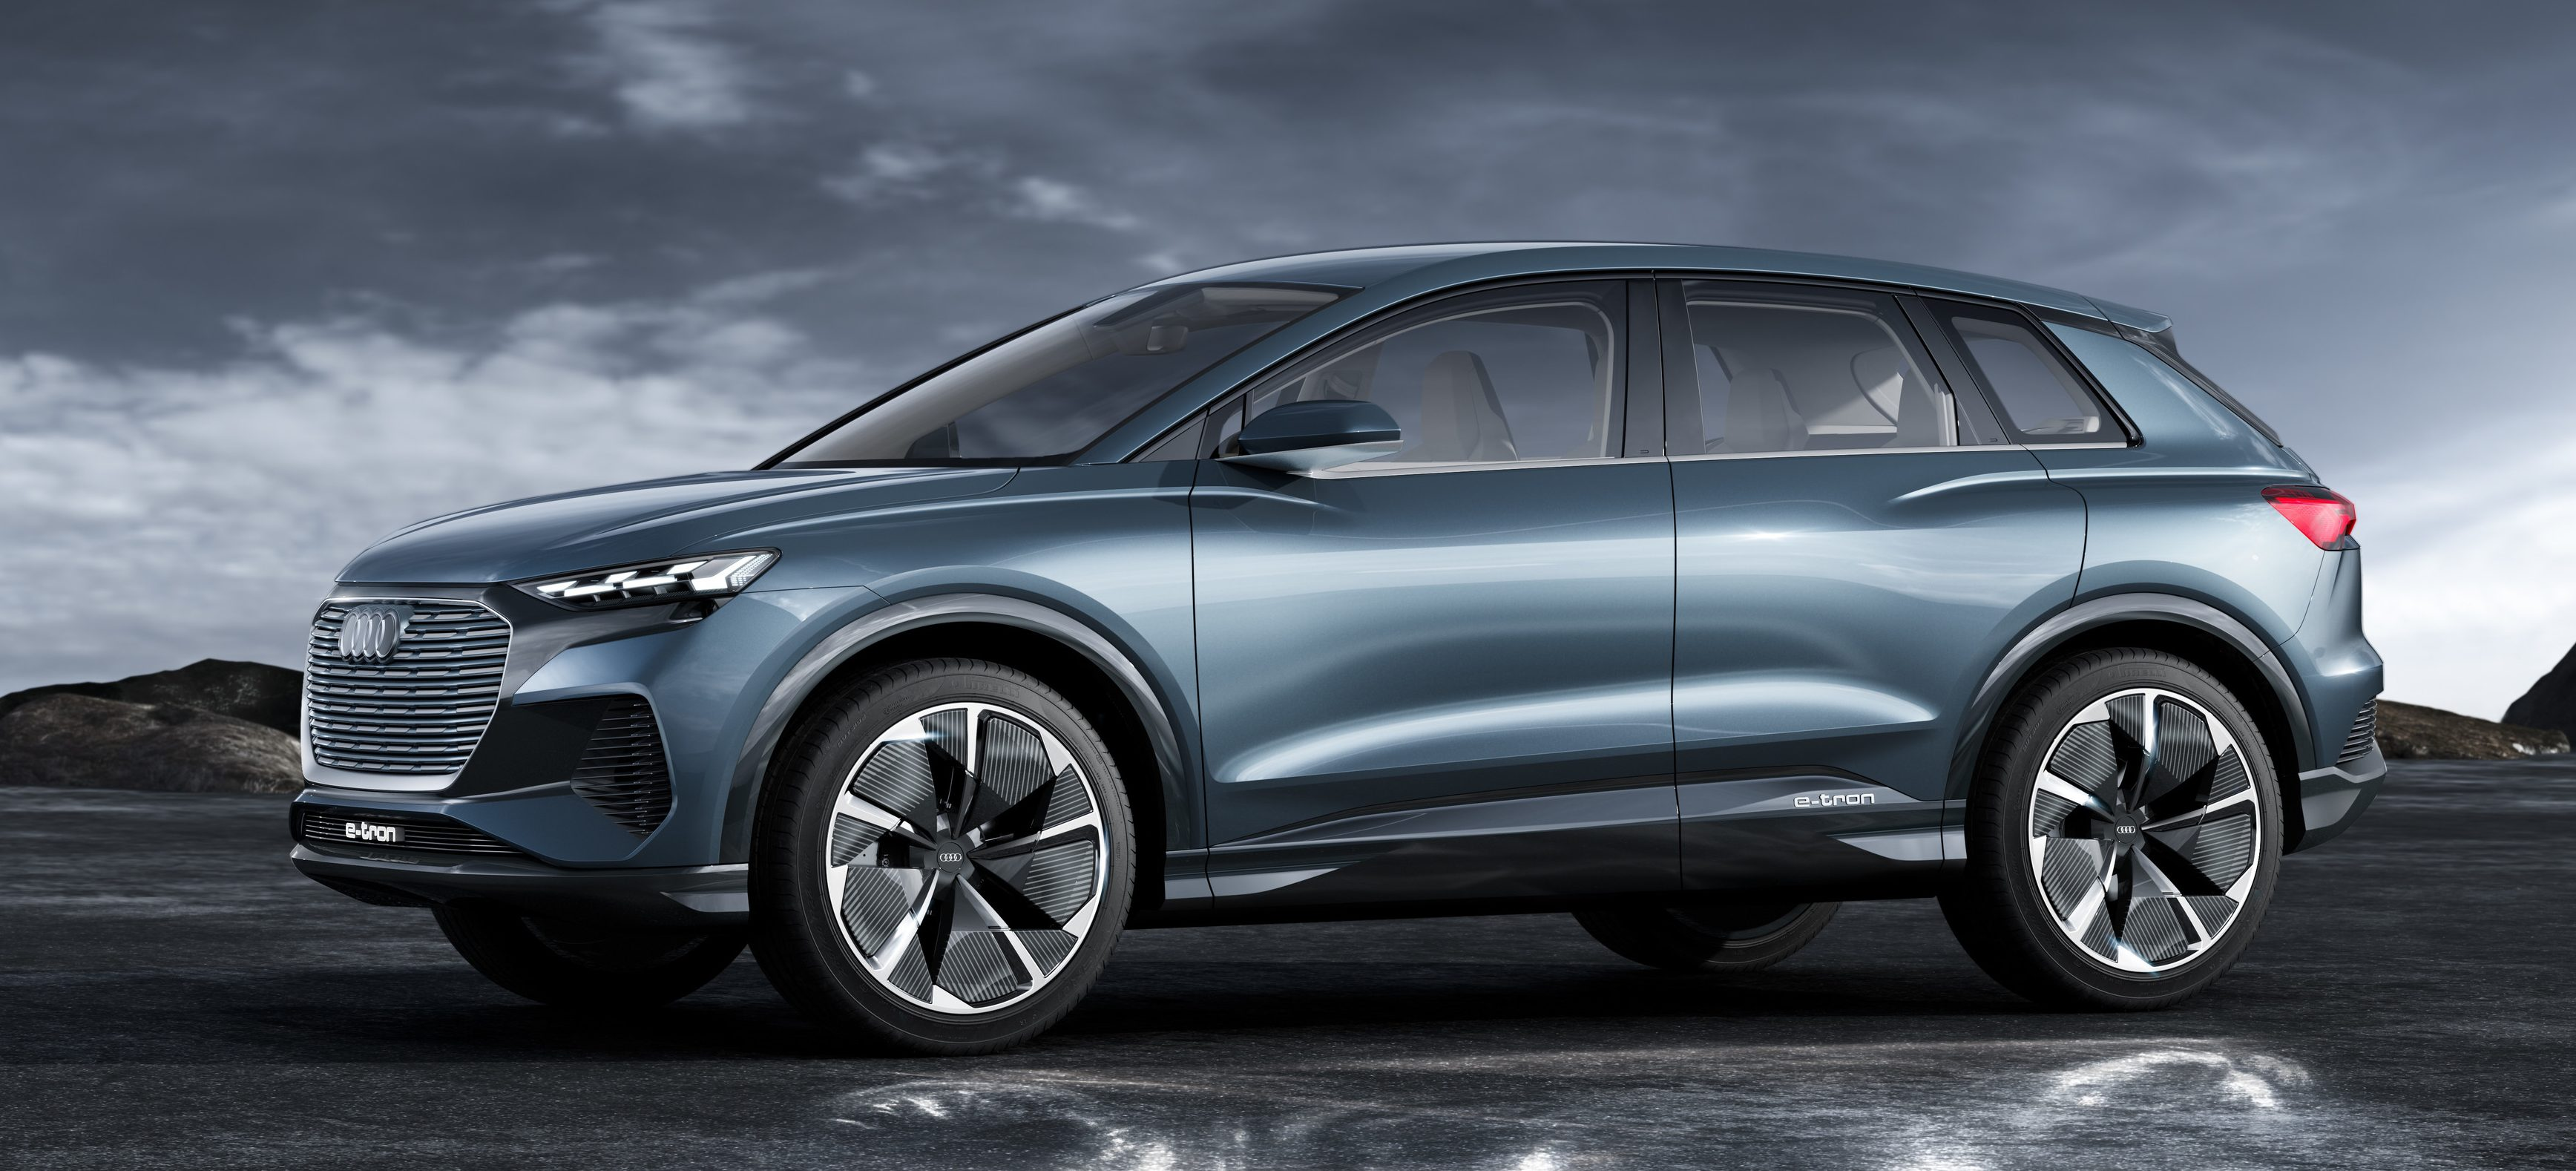 2021 Is Going To Be The Year For Electric Revolution 10 New Evs Coming Next Year Electrek